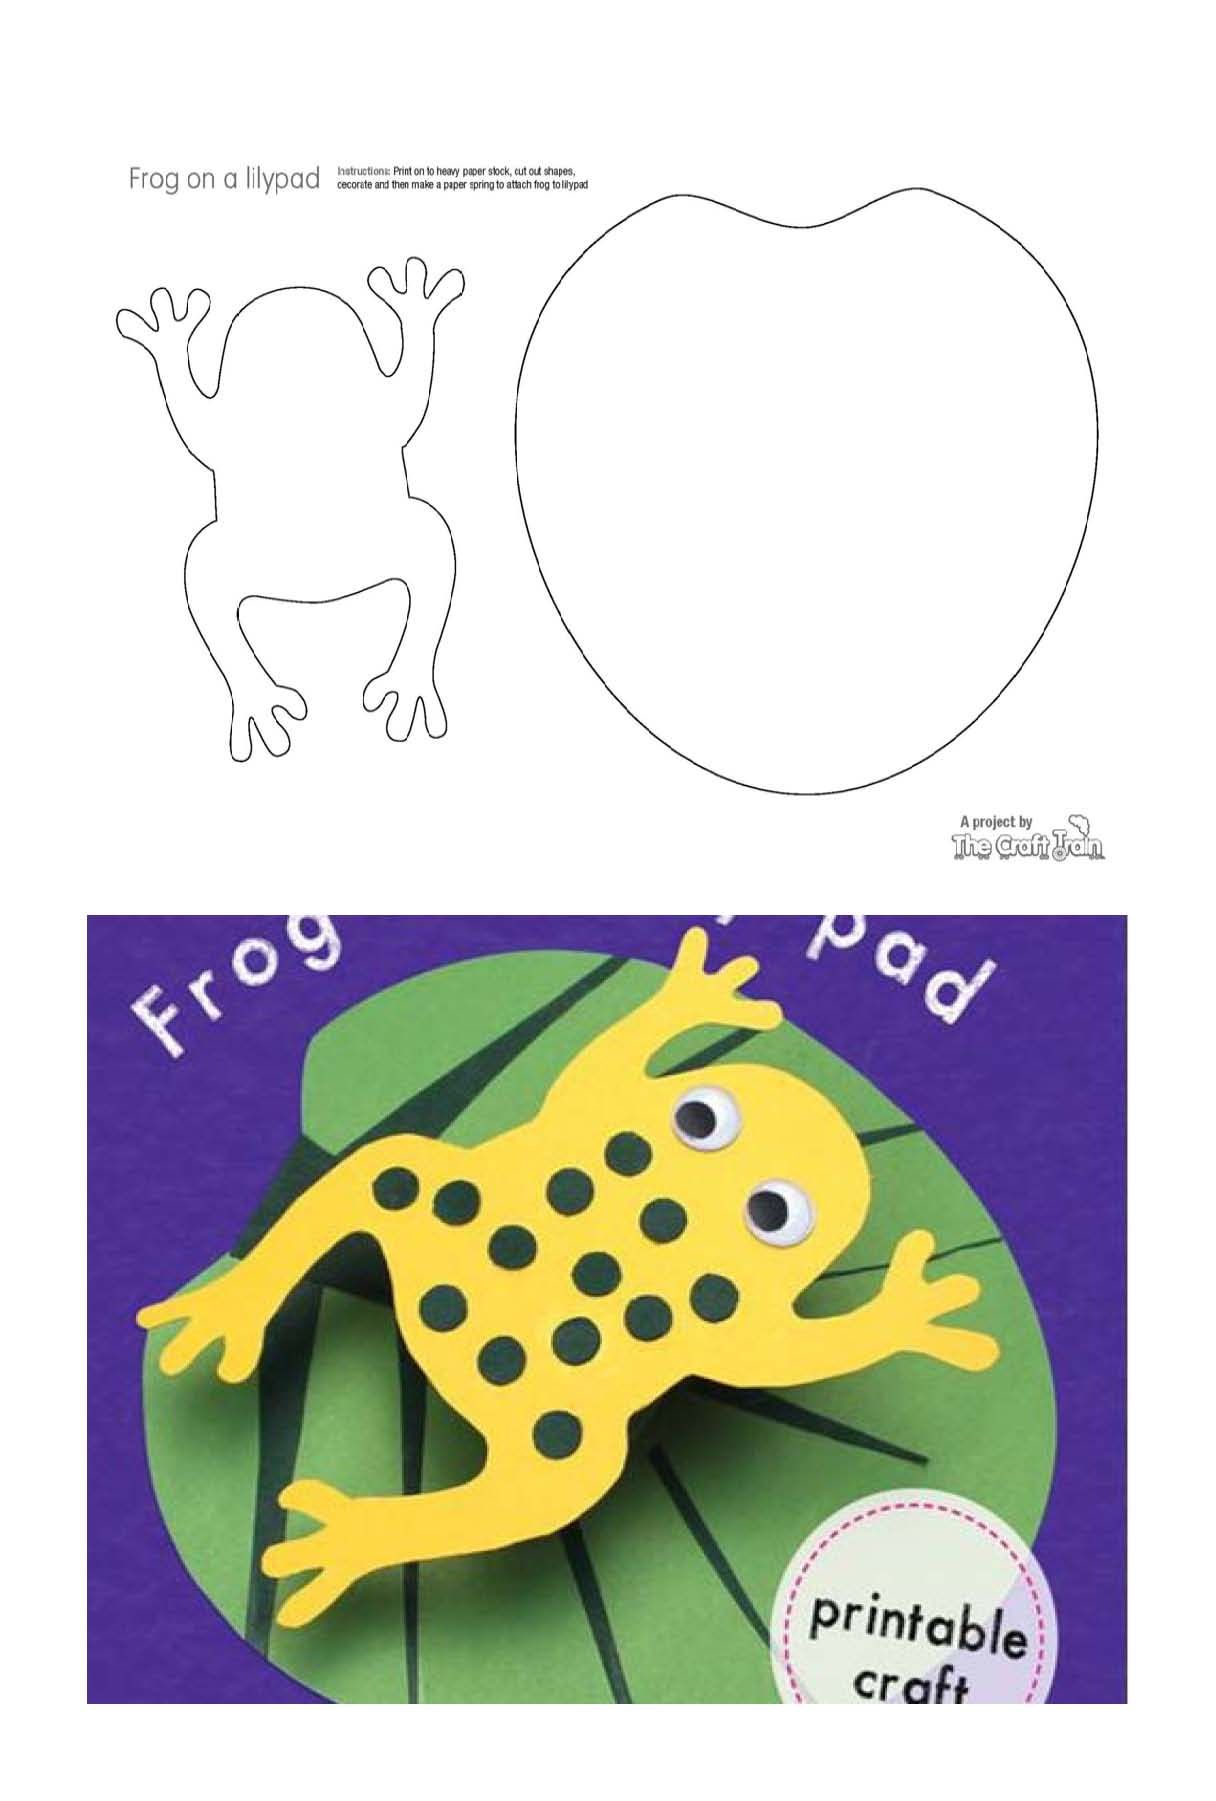 picture relating to Printable Lily Pads known as Frog upon a Lily Pad clroom Frog crafts, Crafts for